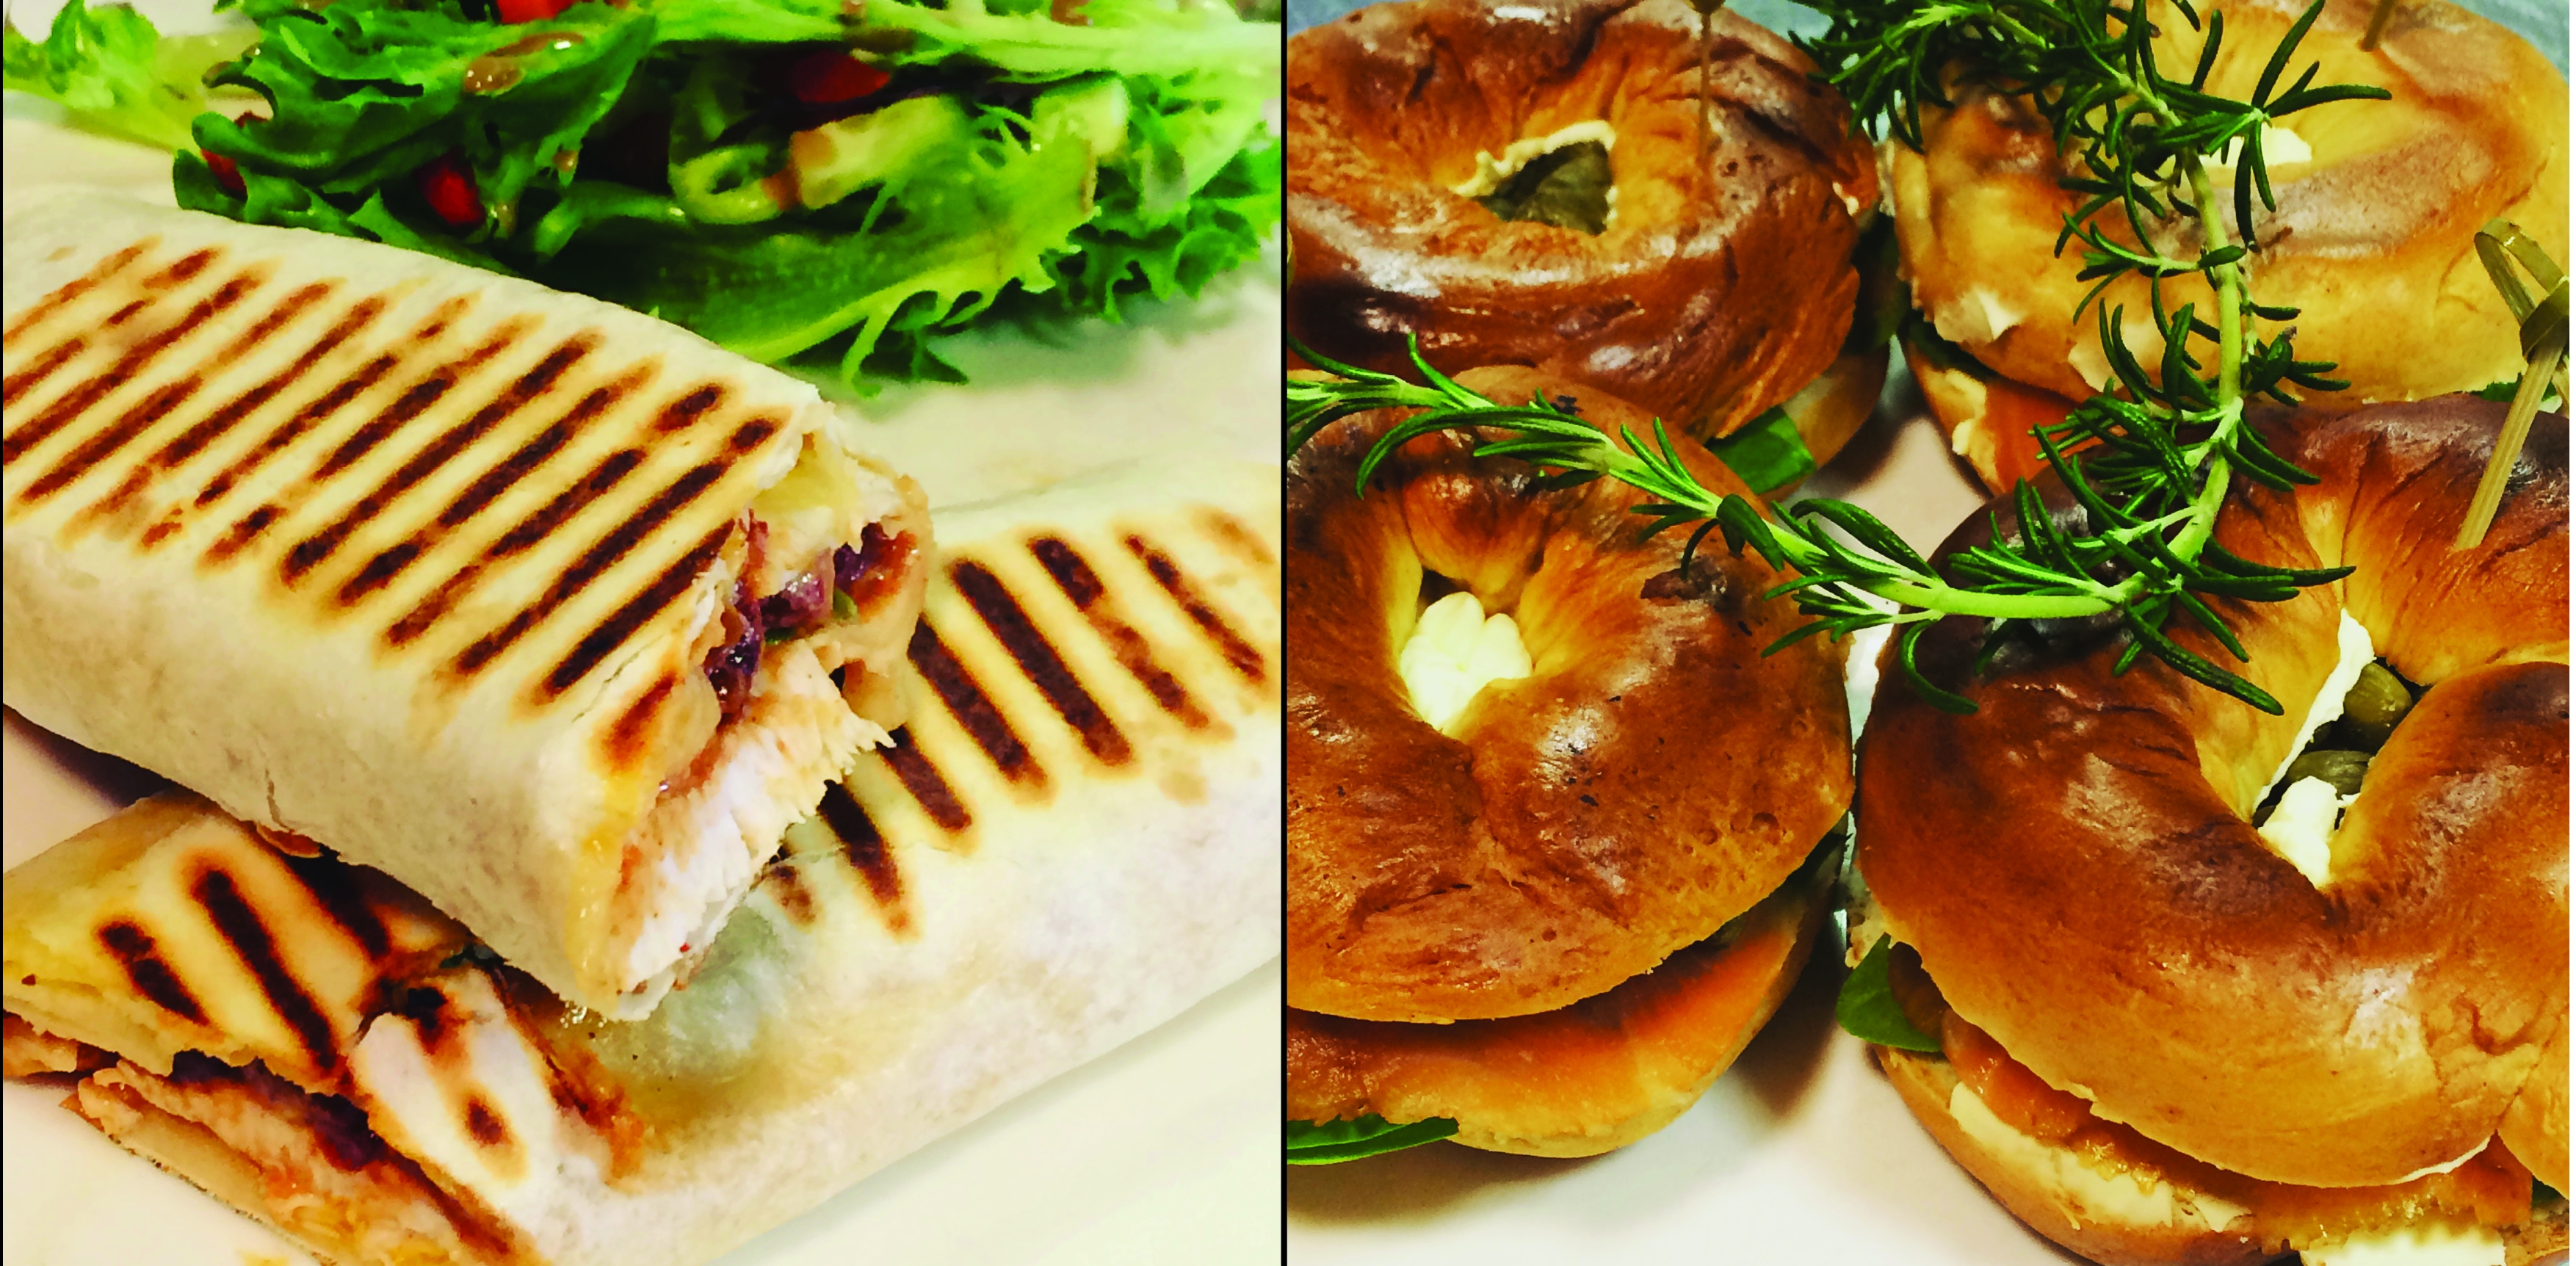 Chipotle Chicken Wrap and Salmon Bagel at Rouge Cafe, Cambridge